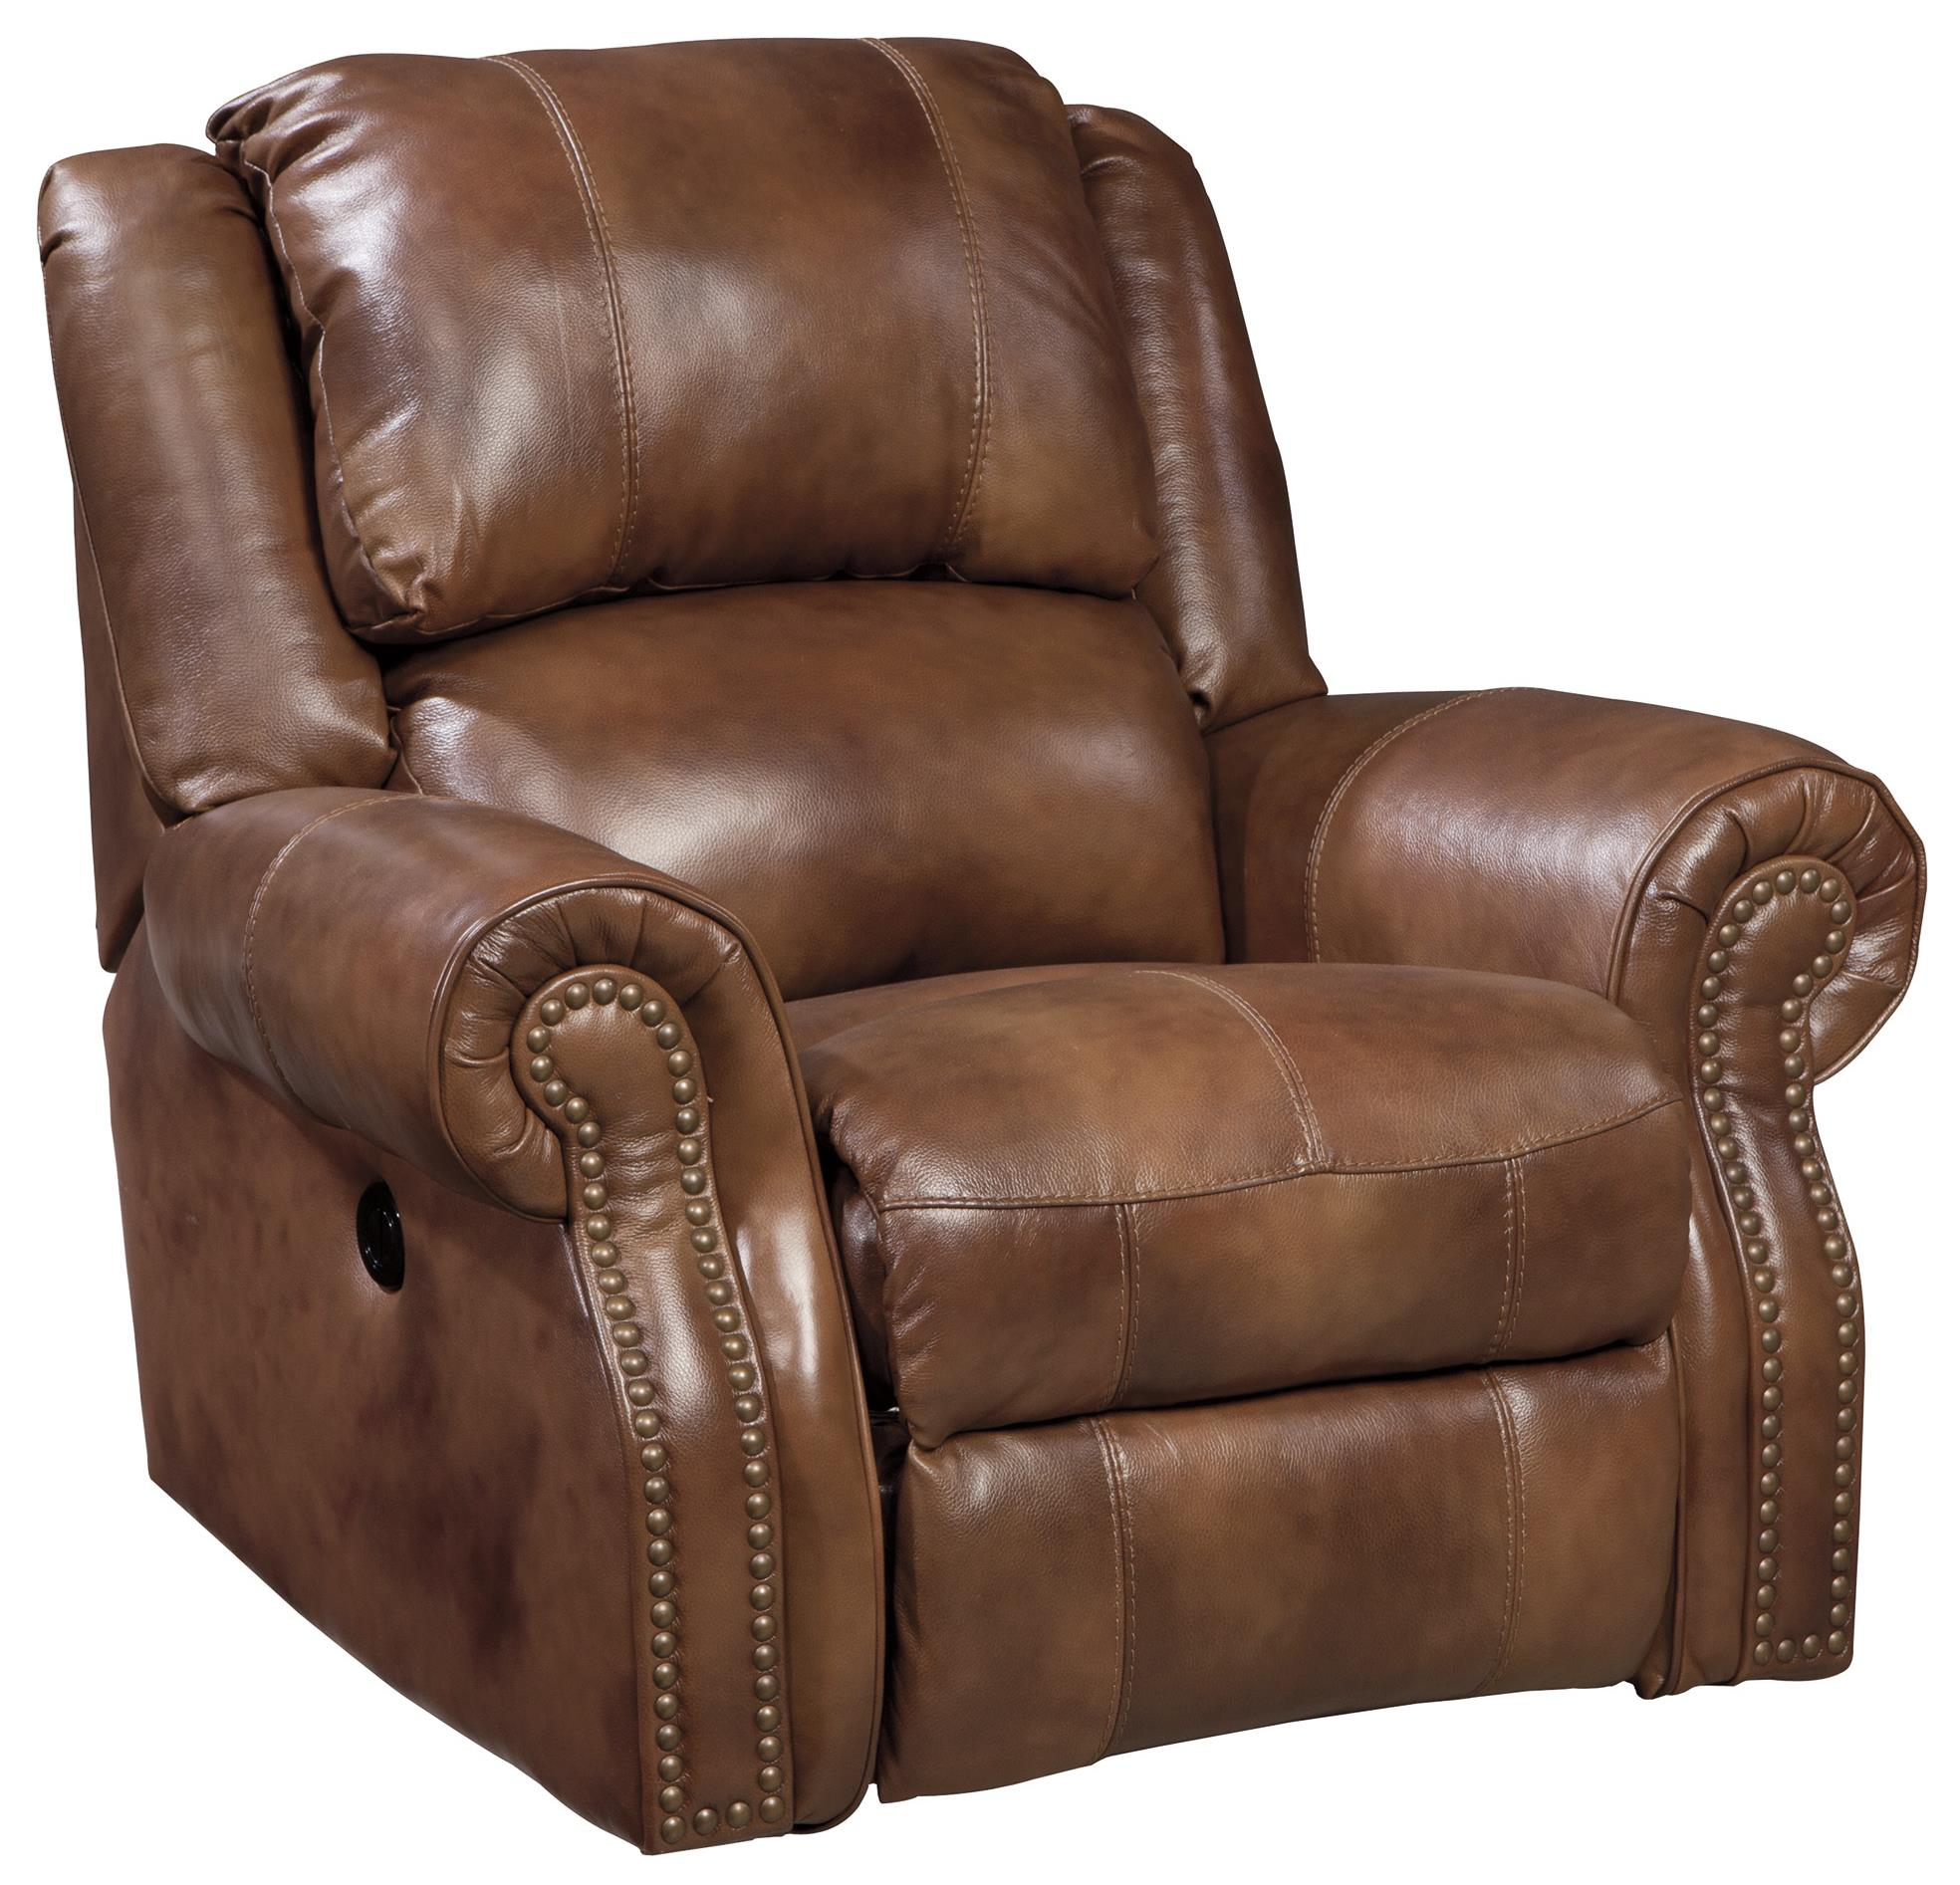 Signature Design By Ashley Walworth U7800198 Leather Match Power Rocker Recliner With Nailhead